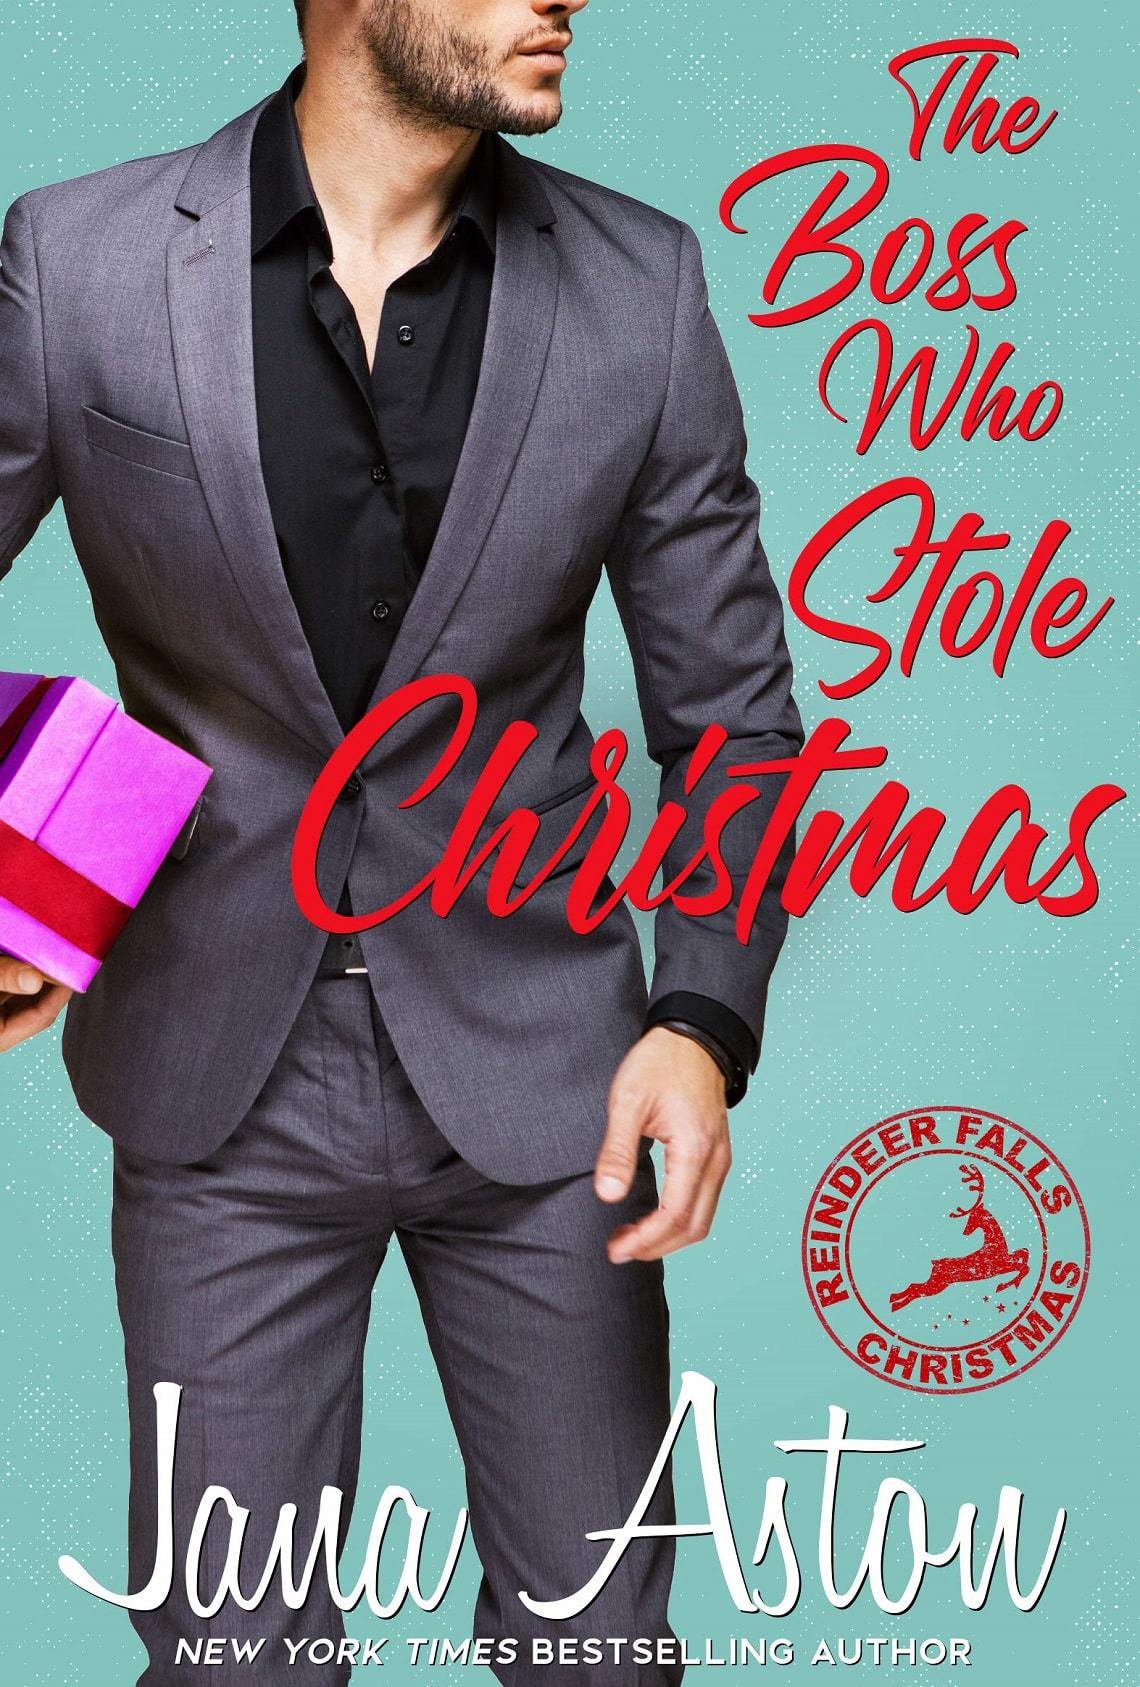 The Boss Who Stole Christmas Audiobook Free Download and Listen